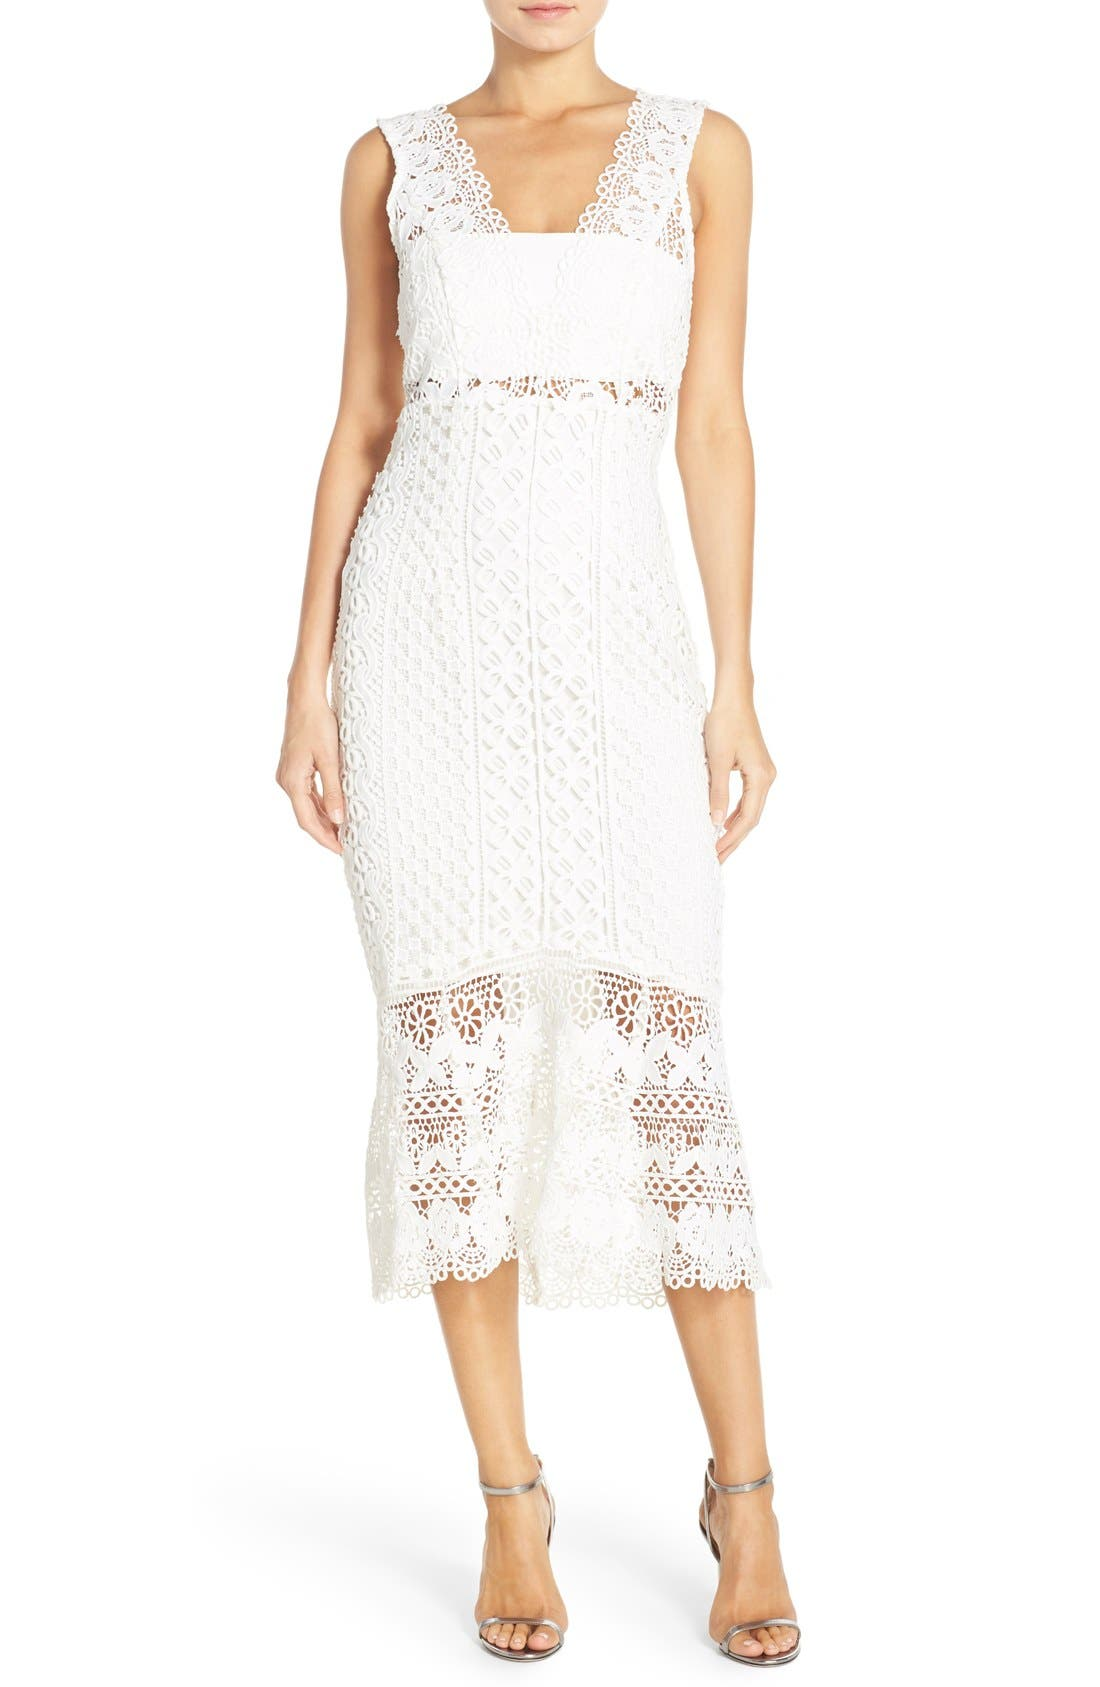 Odyssey Lace Midi Dress,                             Main thumbnail 1, color,                             110